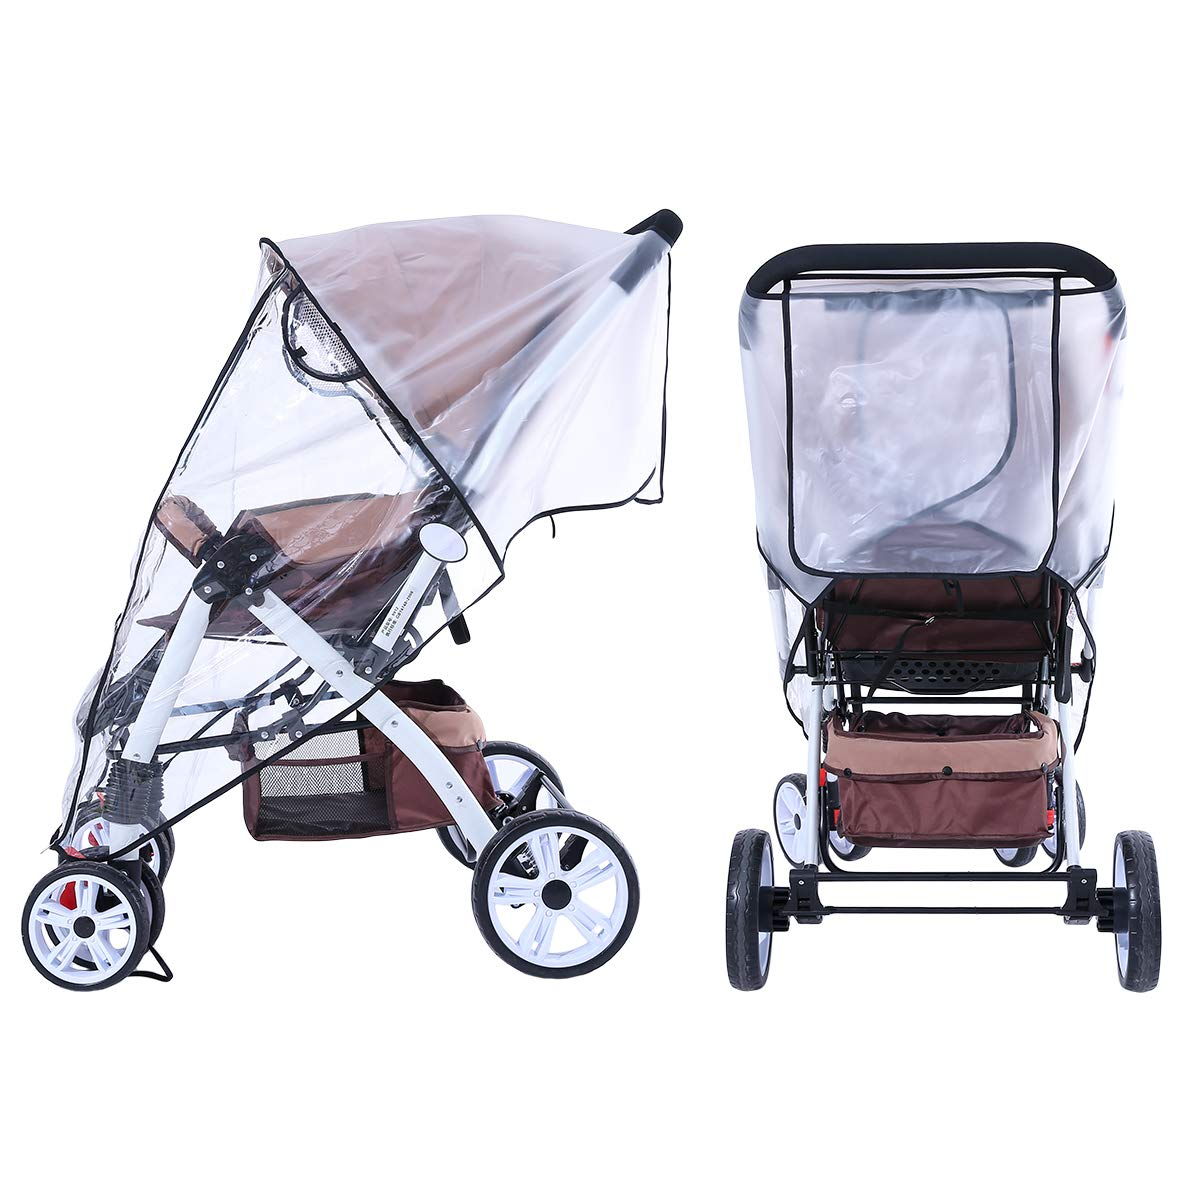 Hrzeem Stroller Rain Cover Stroller Cover Universal Baby Stroller Weather Shield with Storage Pouch EVA Clear Zip Front Opening Waterproof Windproof Protection Easy to Install for Outdoor Use (Black) by Hrzeem (Image #3)